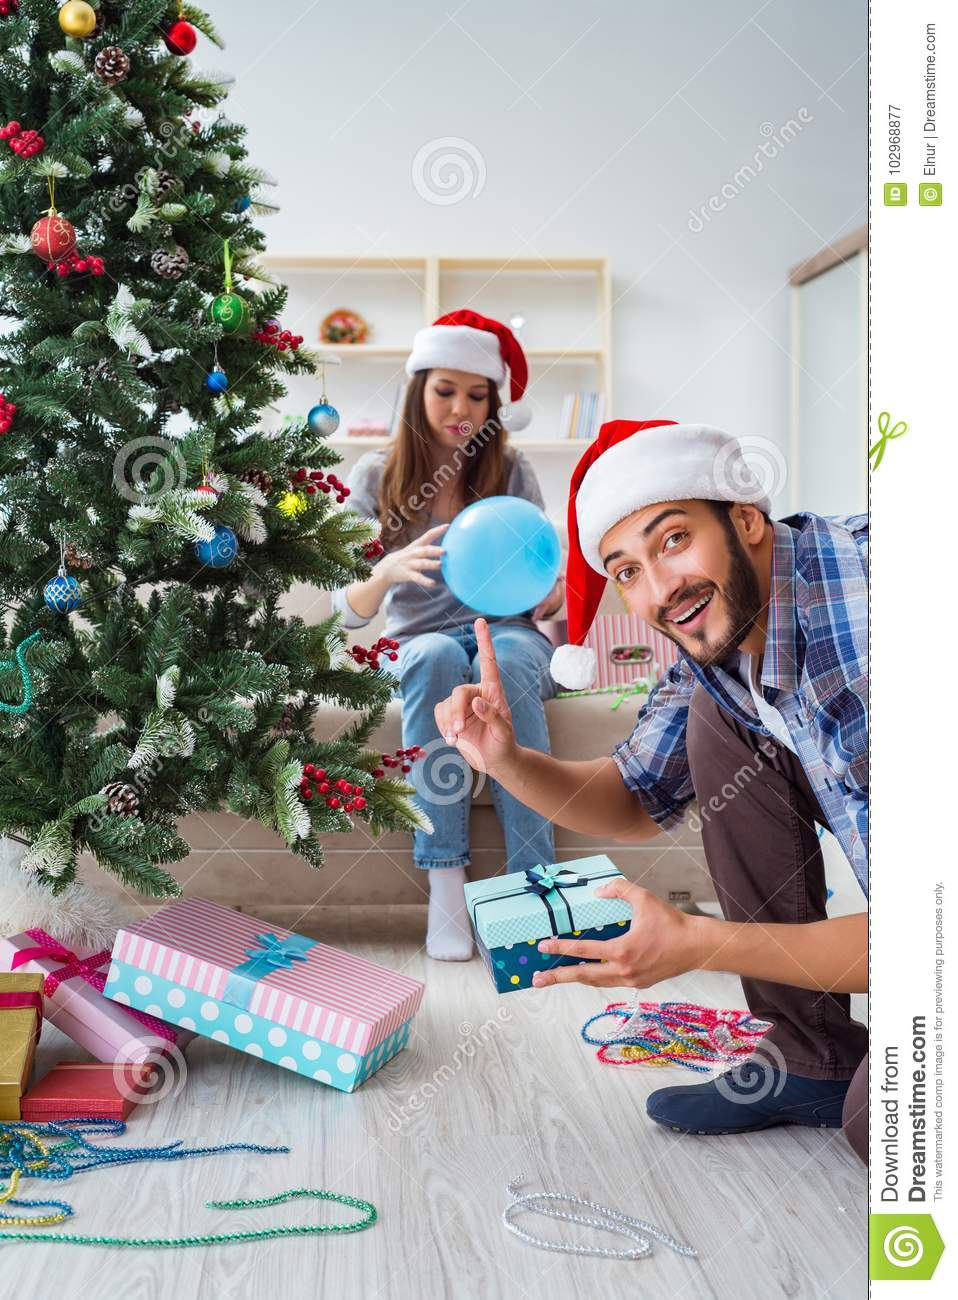 The Girlfriend And Boyfriend Opening Christmas Gifts Stock Image ...